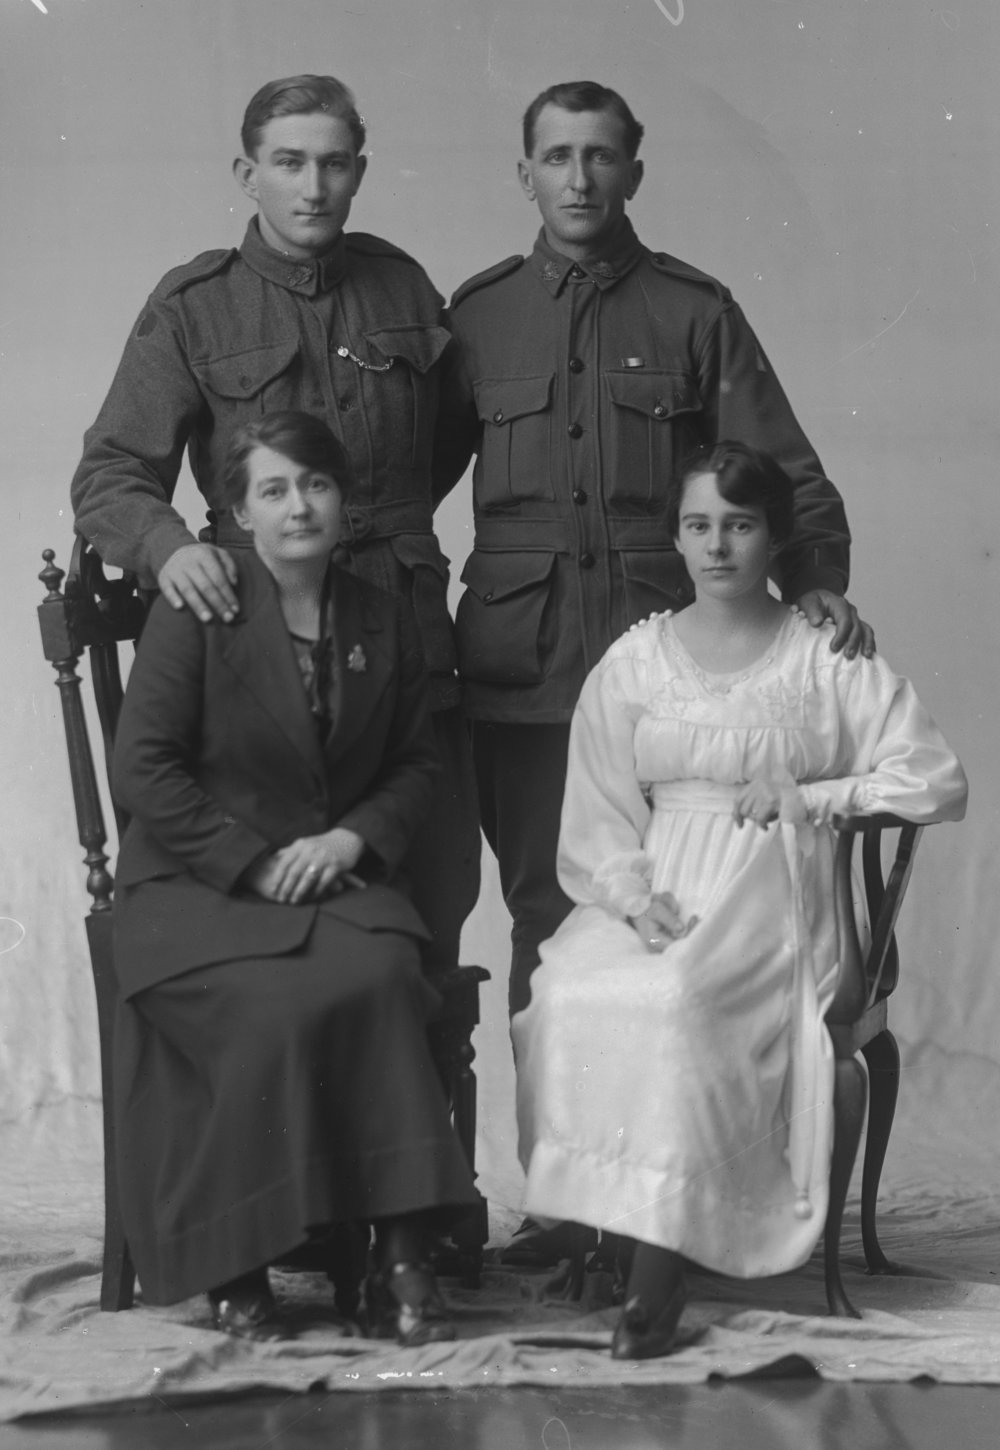 Photographed at the Dease Studio, 117 Barrack Street Perth WA Image courtesy of the State Library of Western Australia: 108040PD